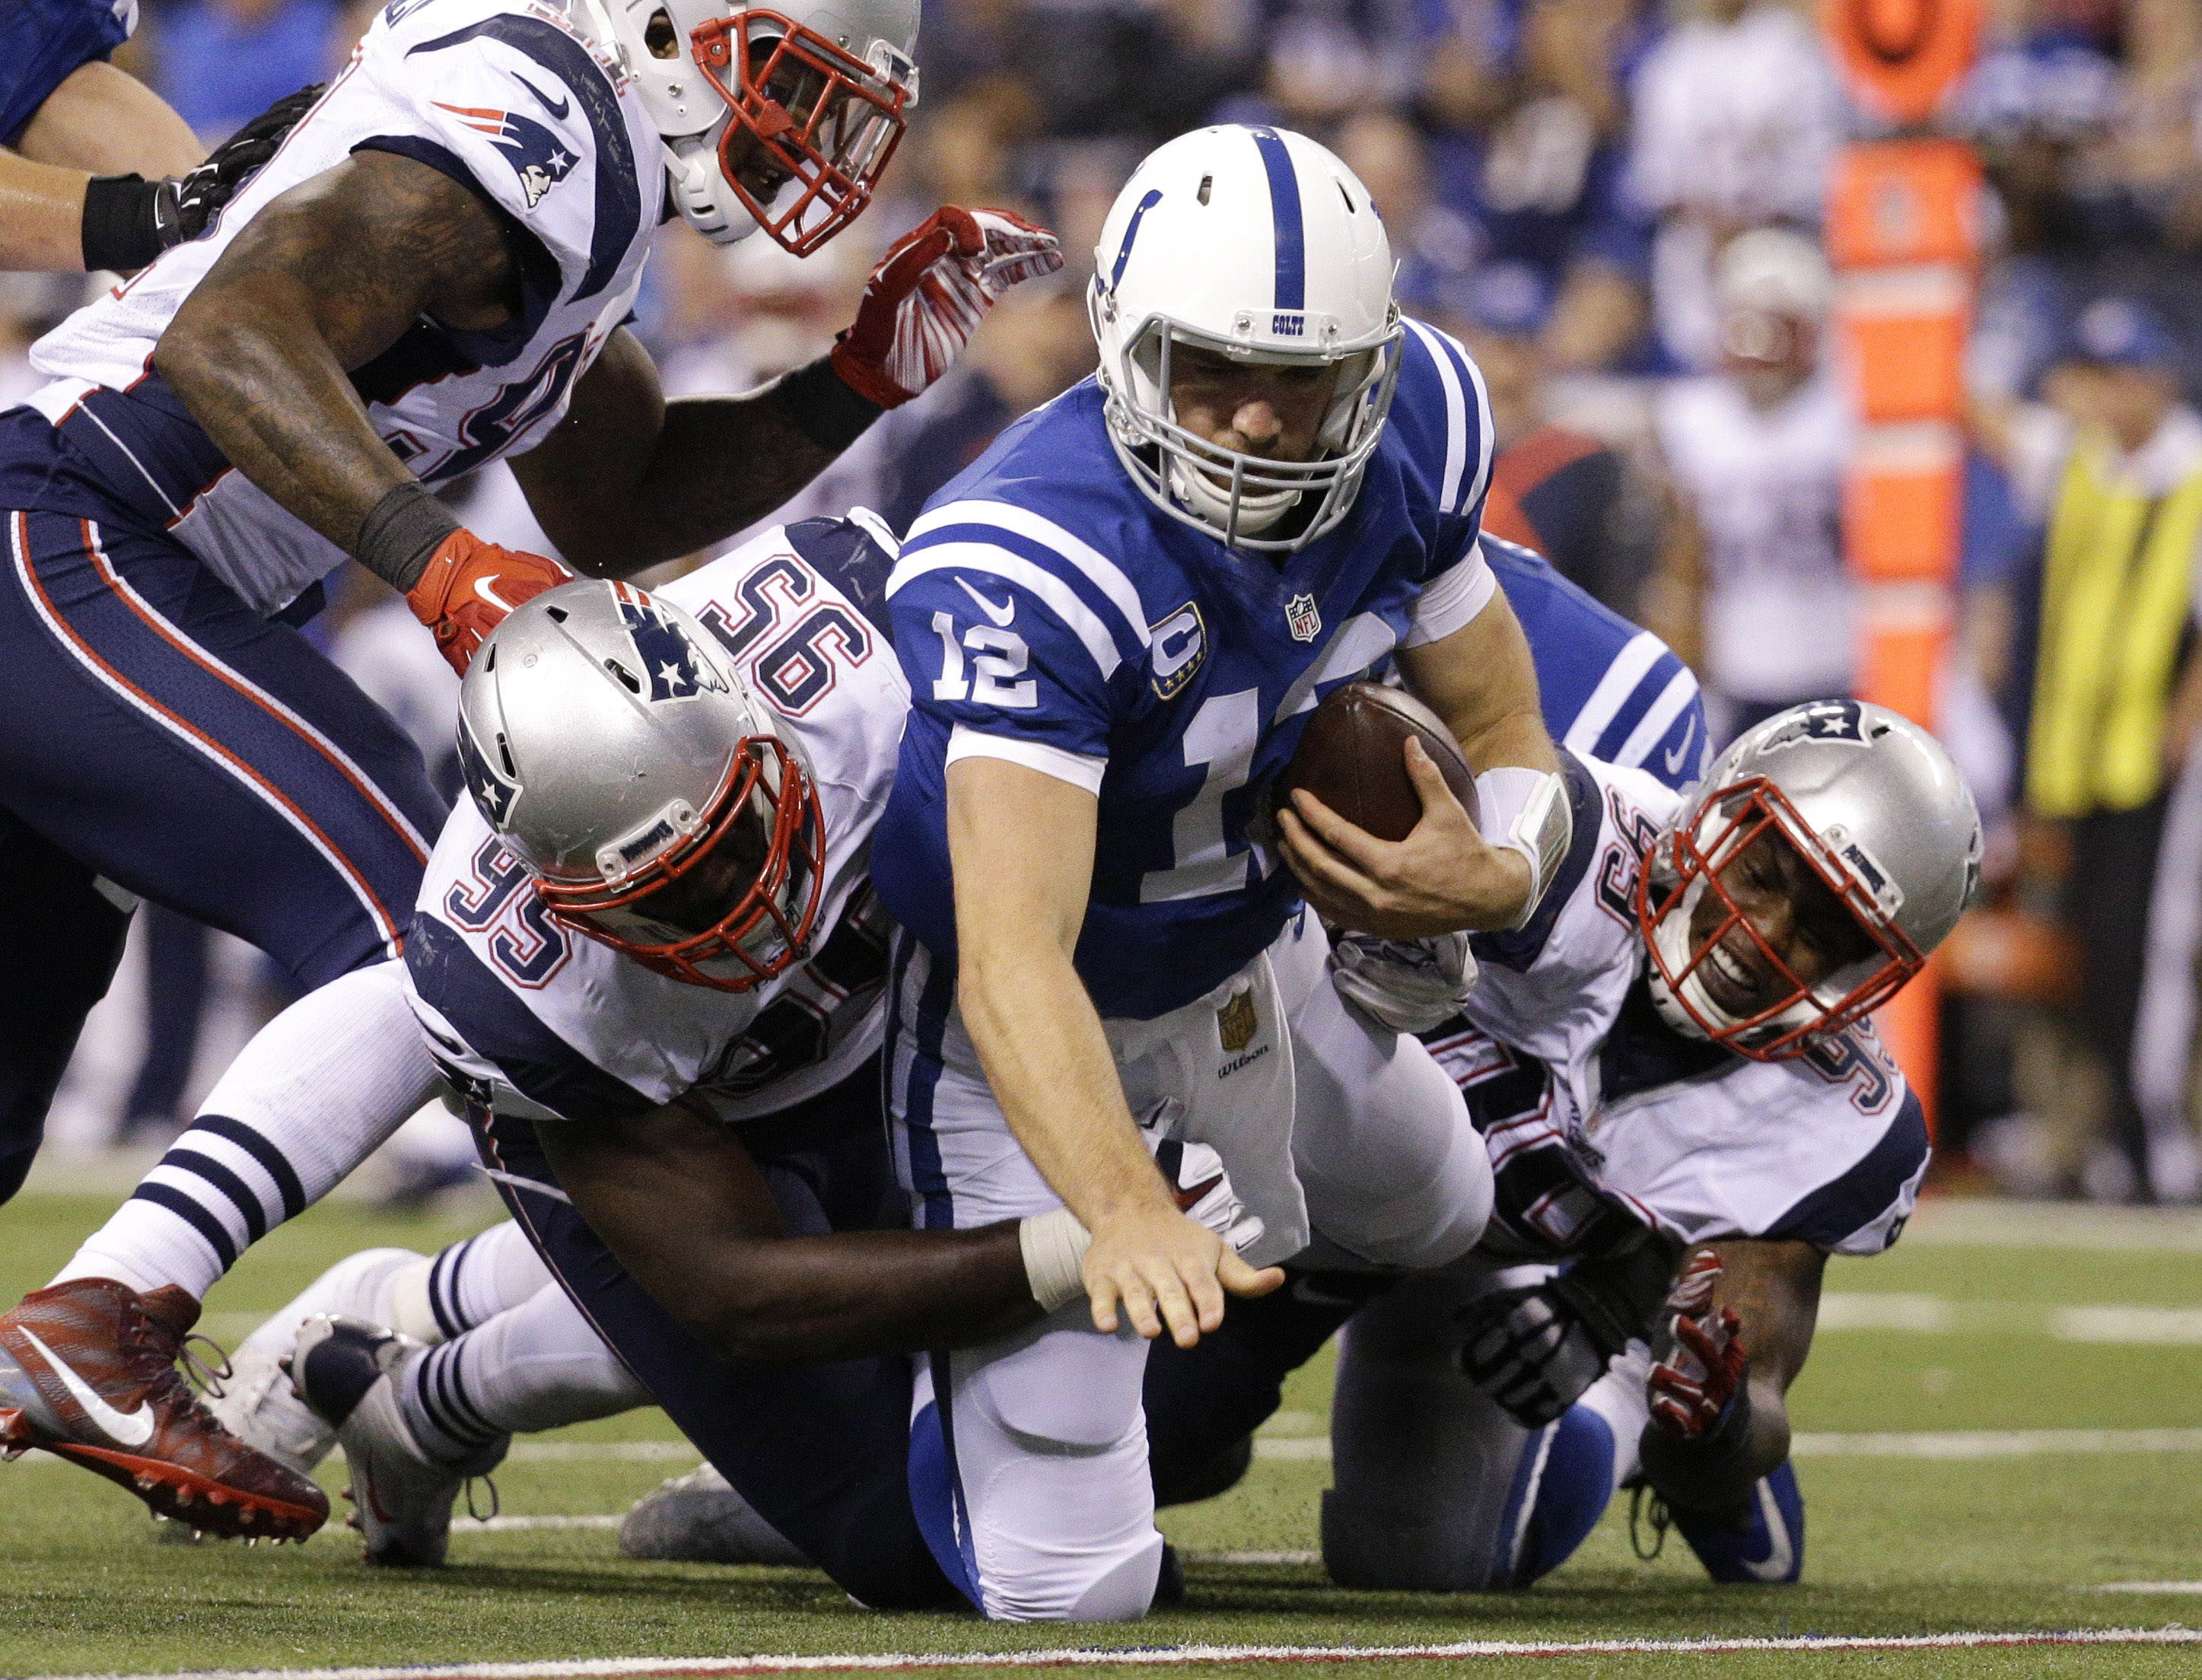 Indianapolis Colts quarterback Andrew Luck (12) is sacked by New England Patriots defensive end Chandler Jones (95) and defensive tackle Dominique Easley (99) in the second half of an NFL football game in Indianapolis, Sunday, Oct. 18, 2015. New England w